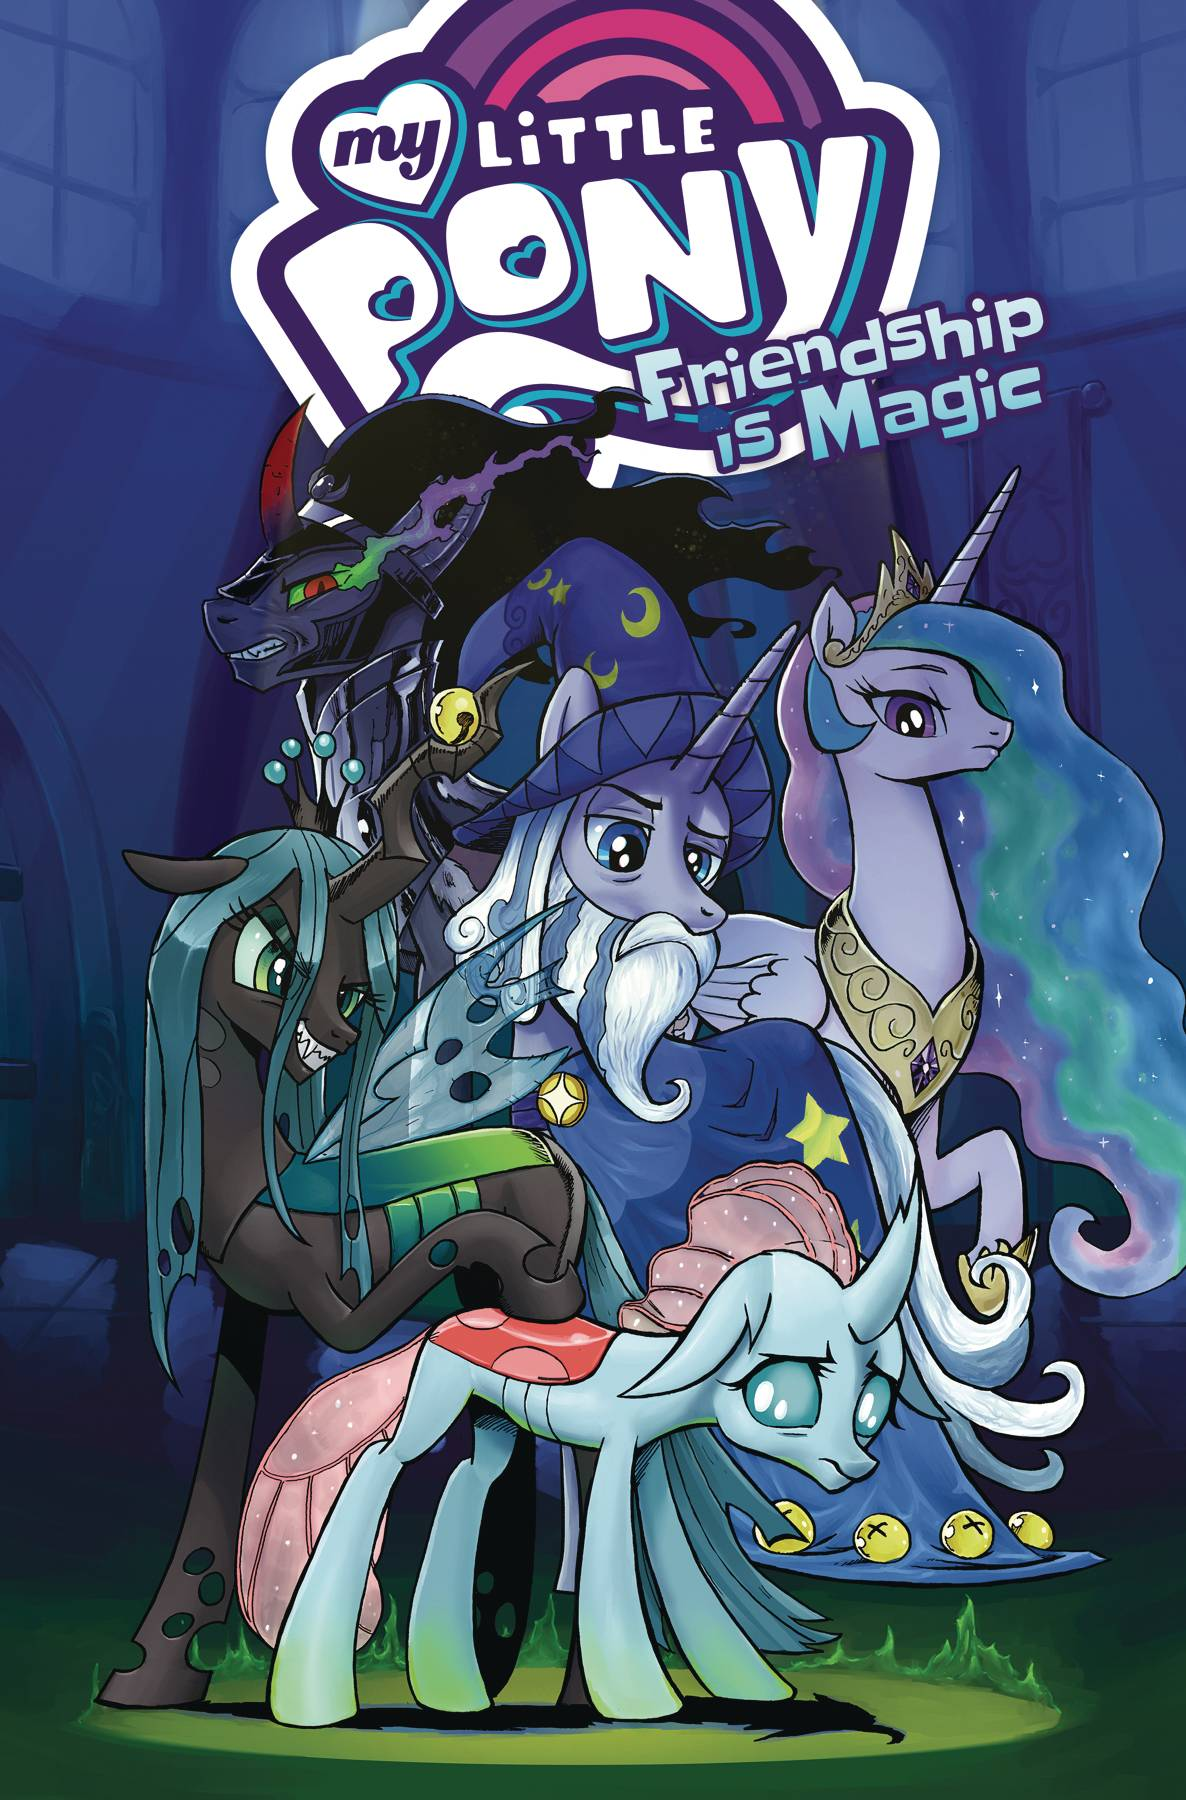 EXCLUSIVE ANNOUNCEMENT: My Little Pony Friendship Is